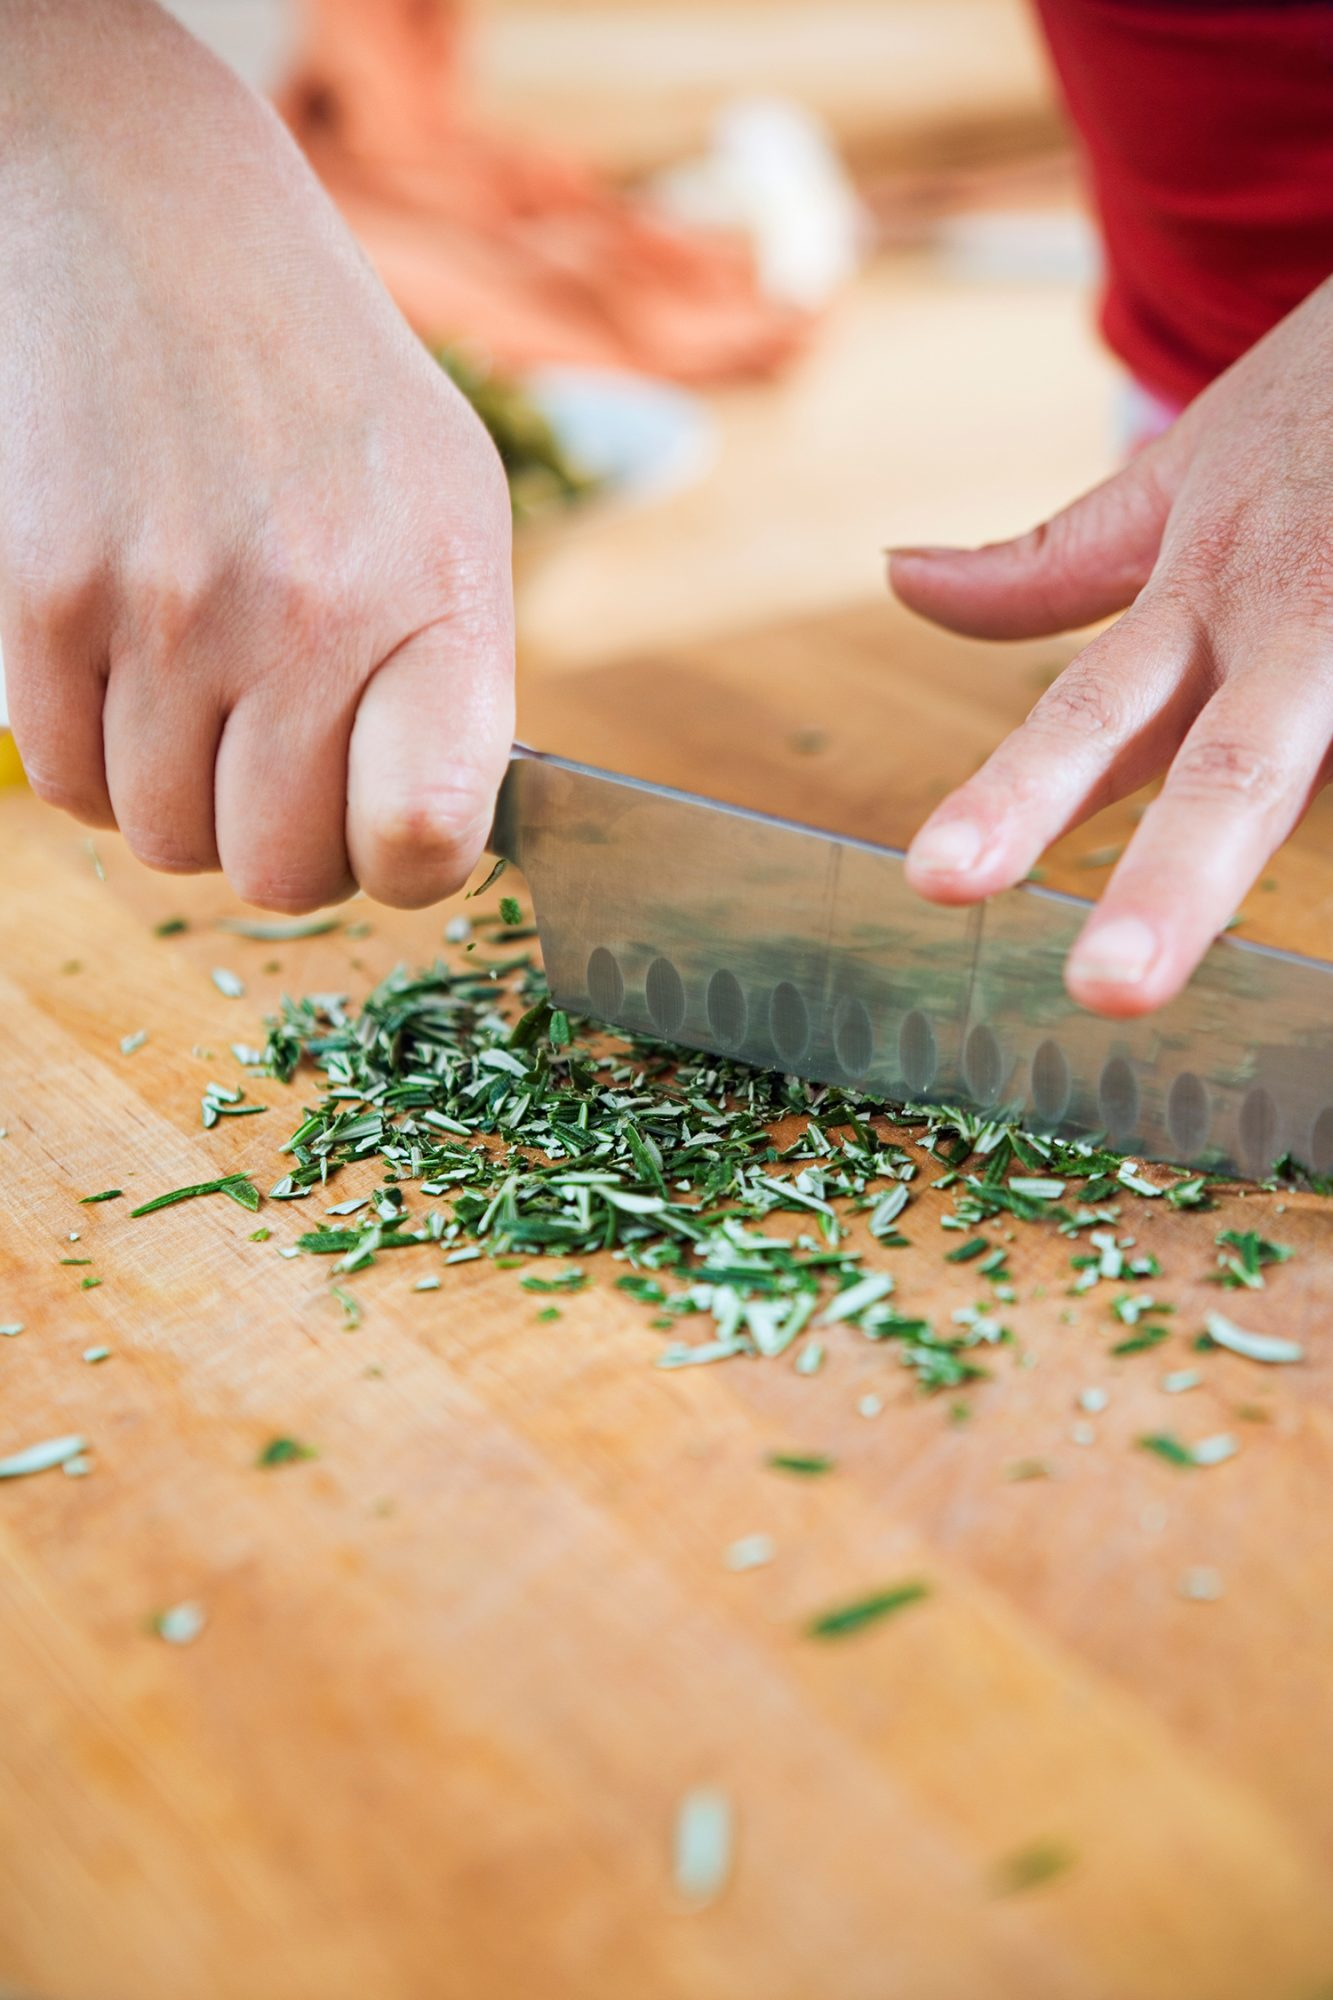 Chopping Rosemary and Thyme Closeup